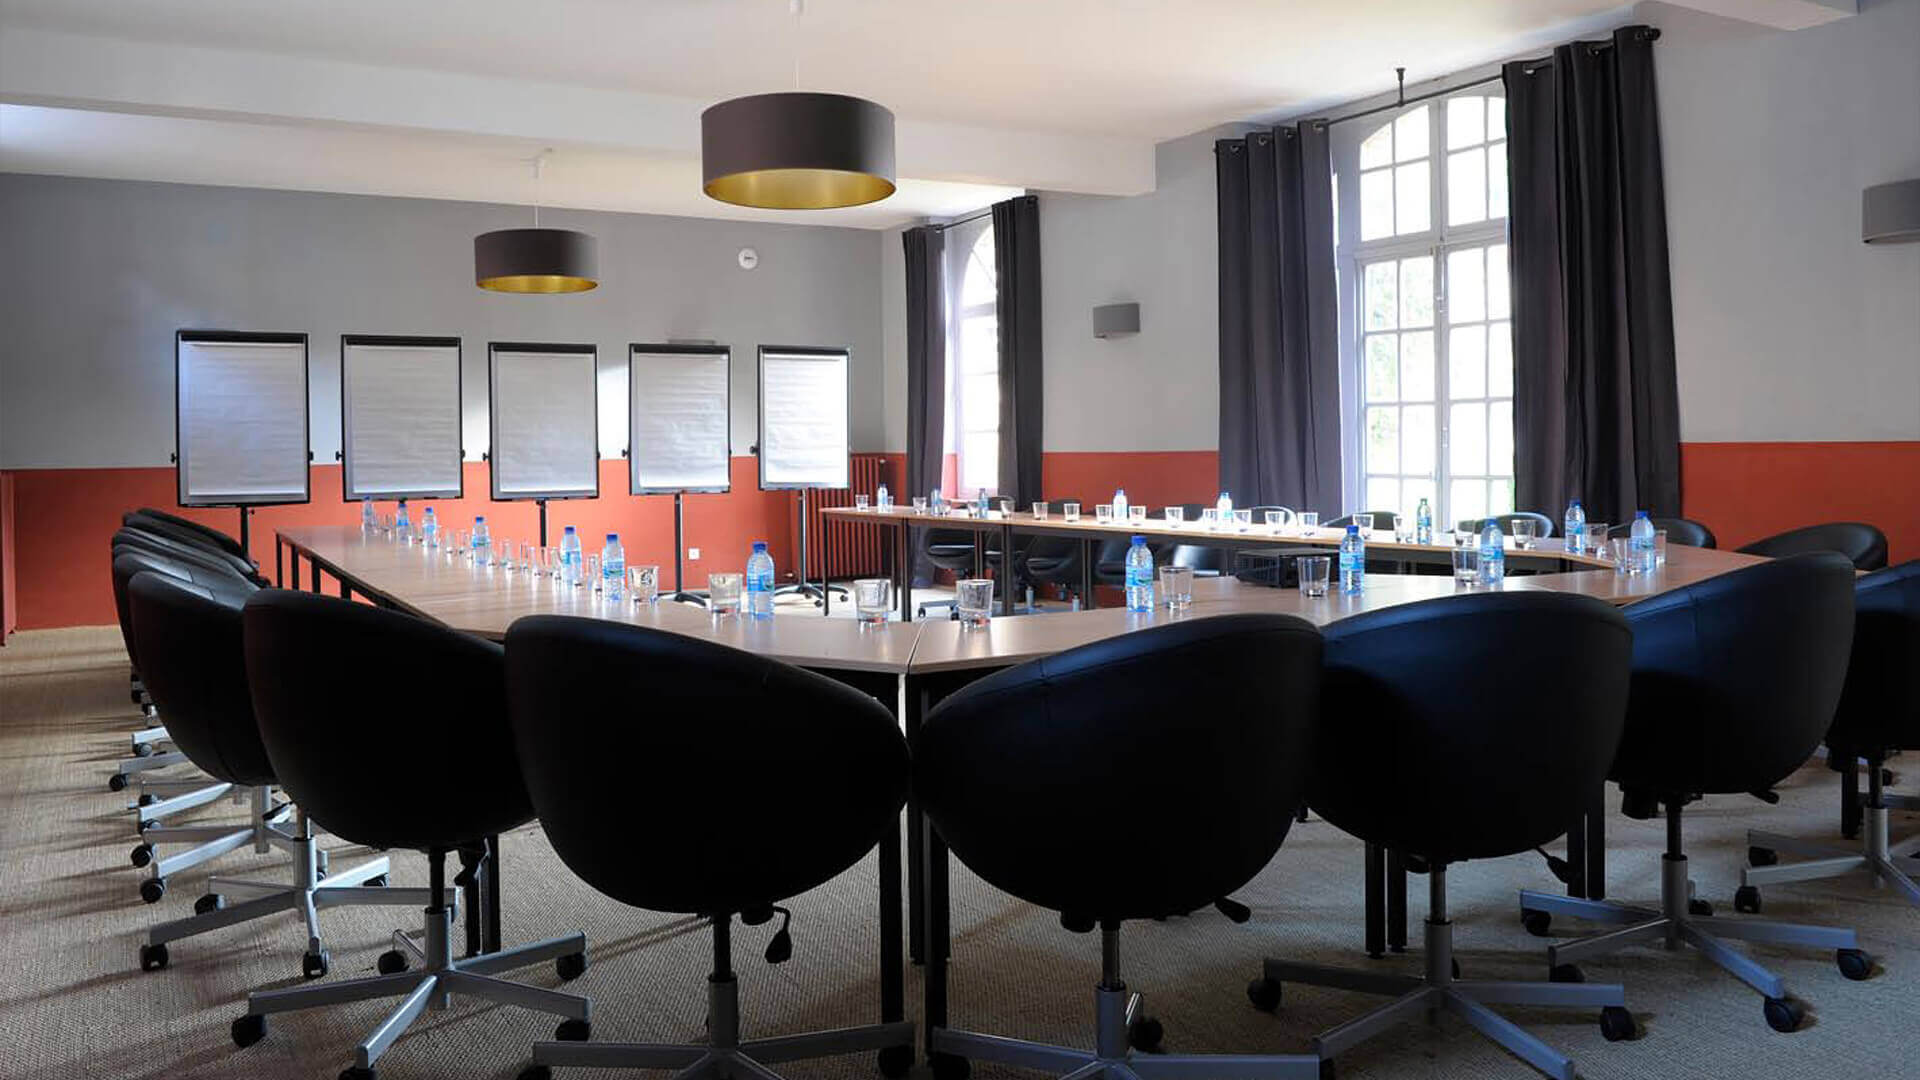 Chateau Perche black chairs in big conference room